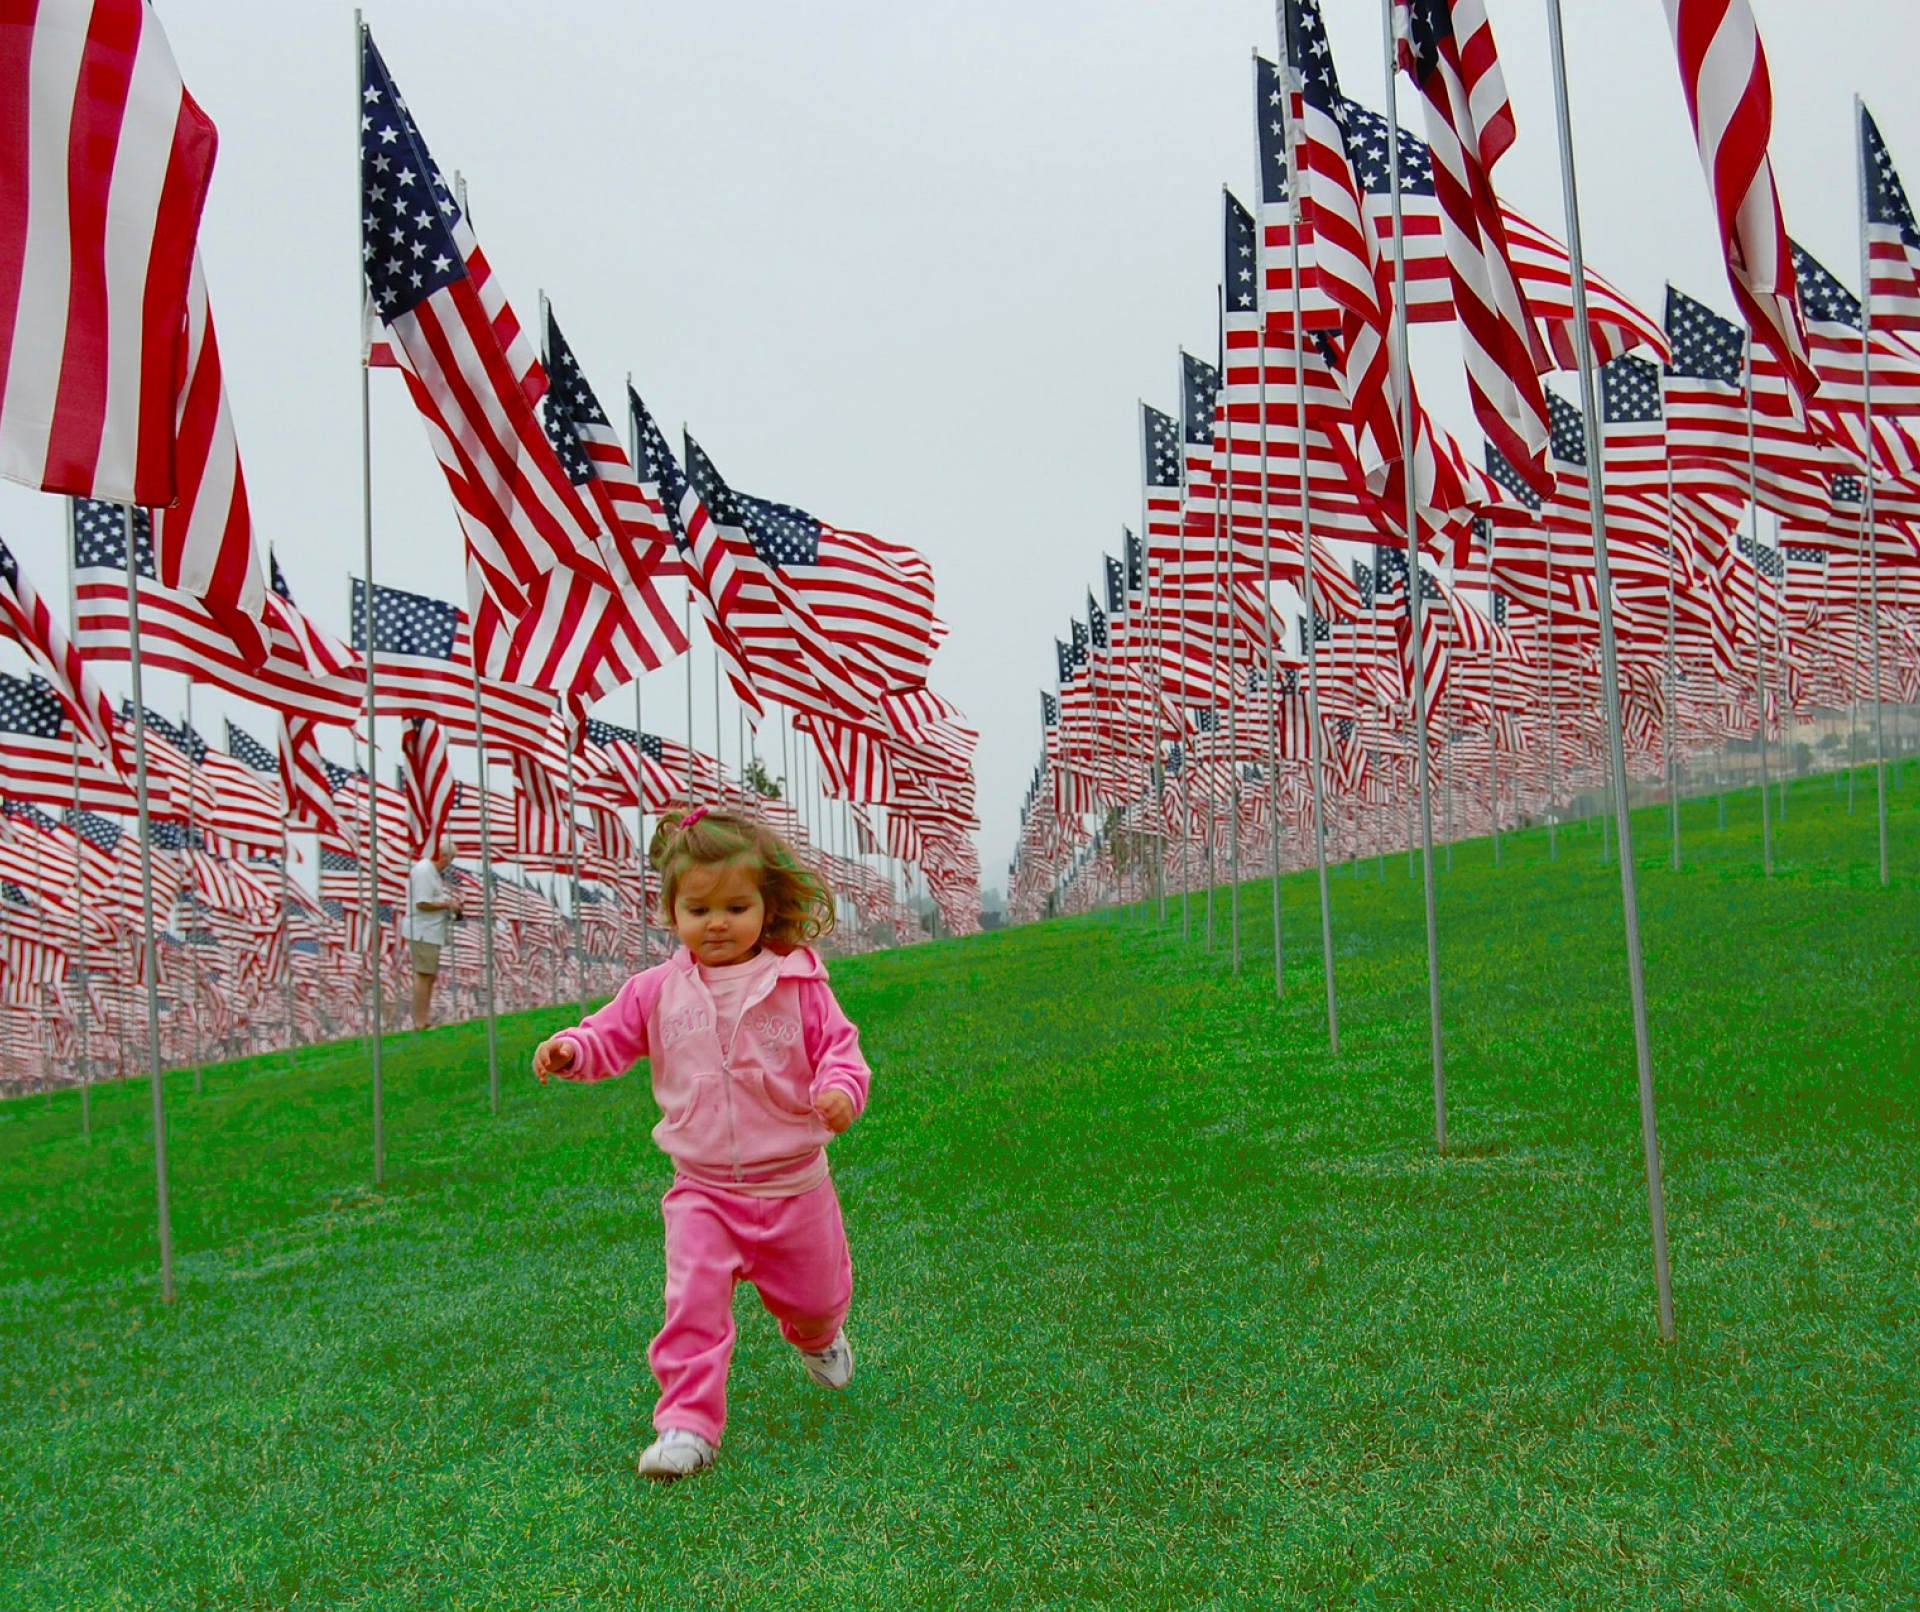 child pink girl American flags runs artificial grass